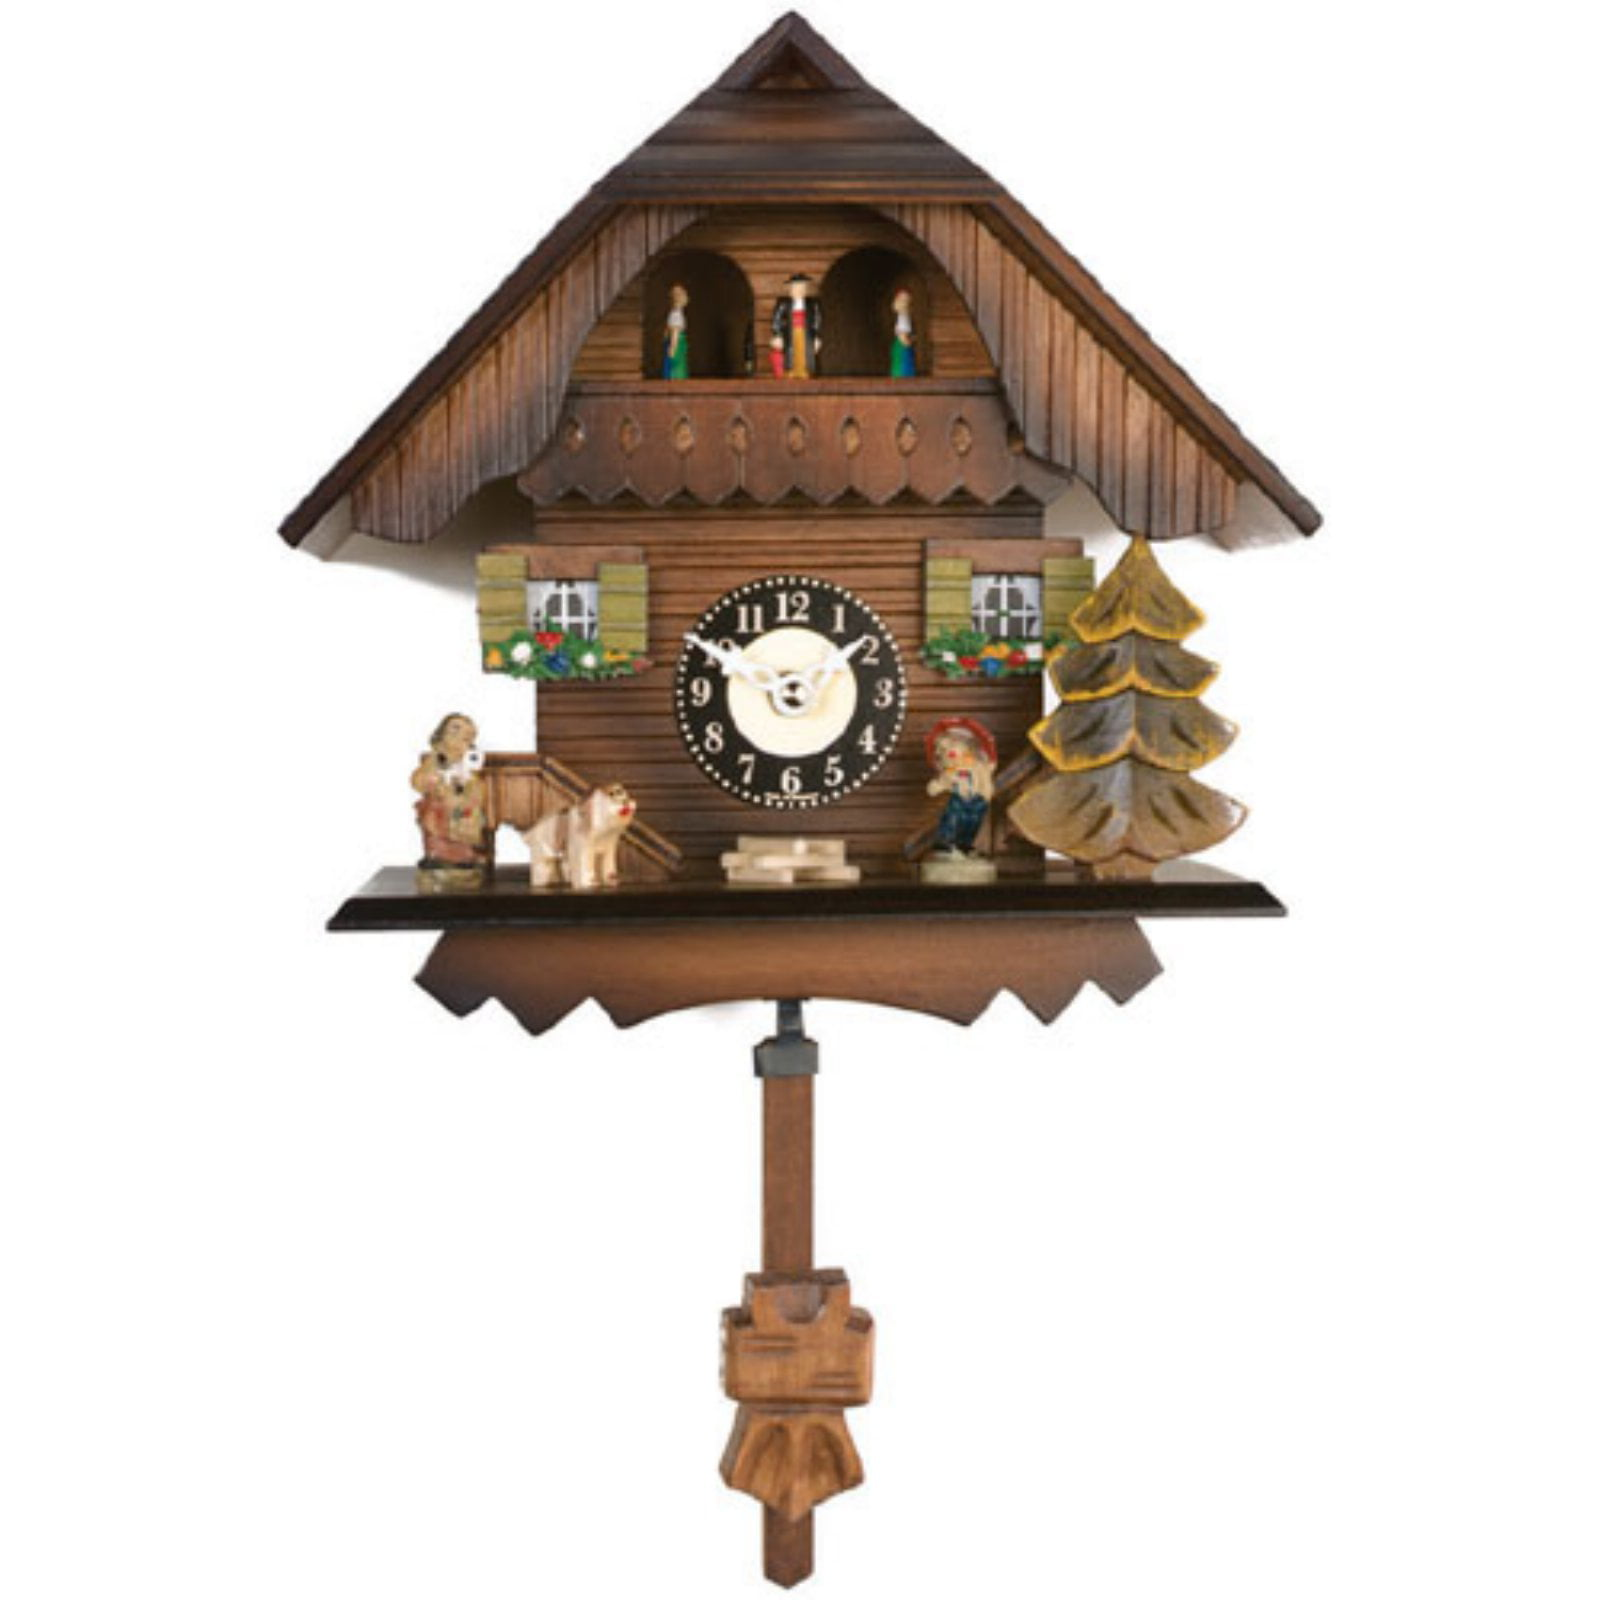 7 Inch Black Forest Chalet Cuckoo Clock by River City Clocks